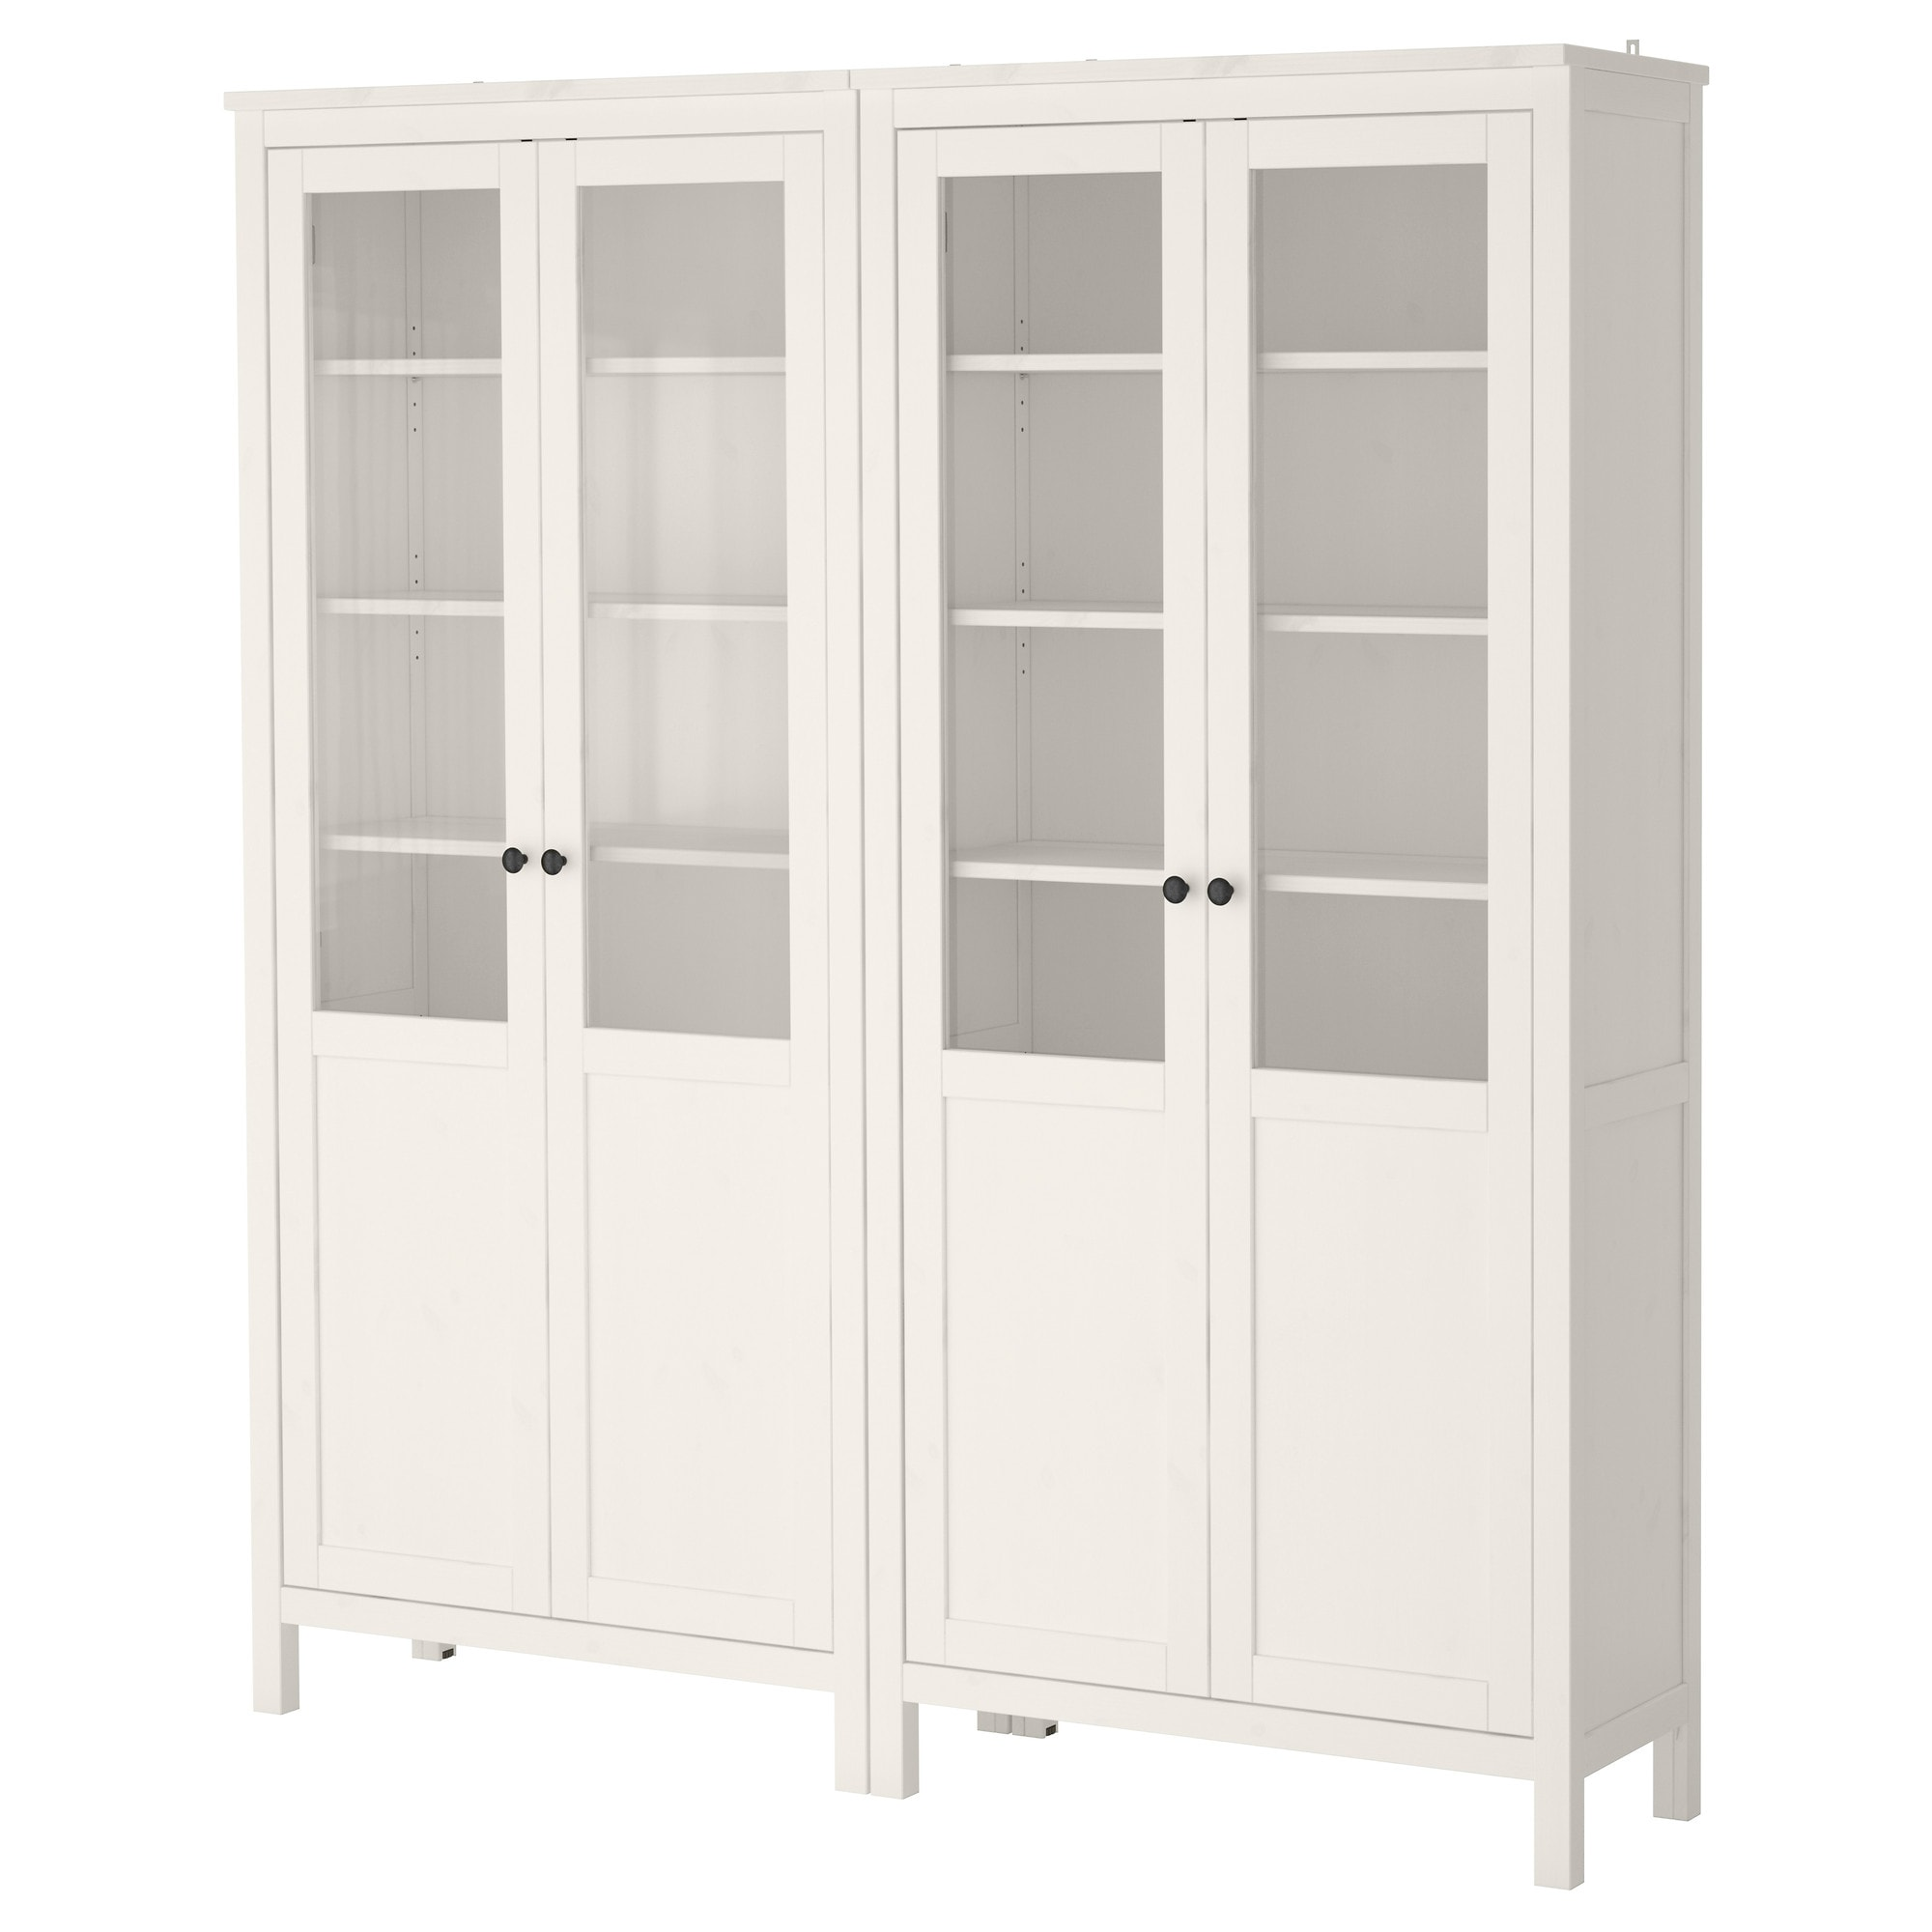 Dining Room Cabinets Ikea hemnes storage combination w/glass doors - white stain - ikea